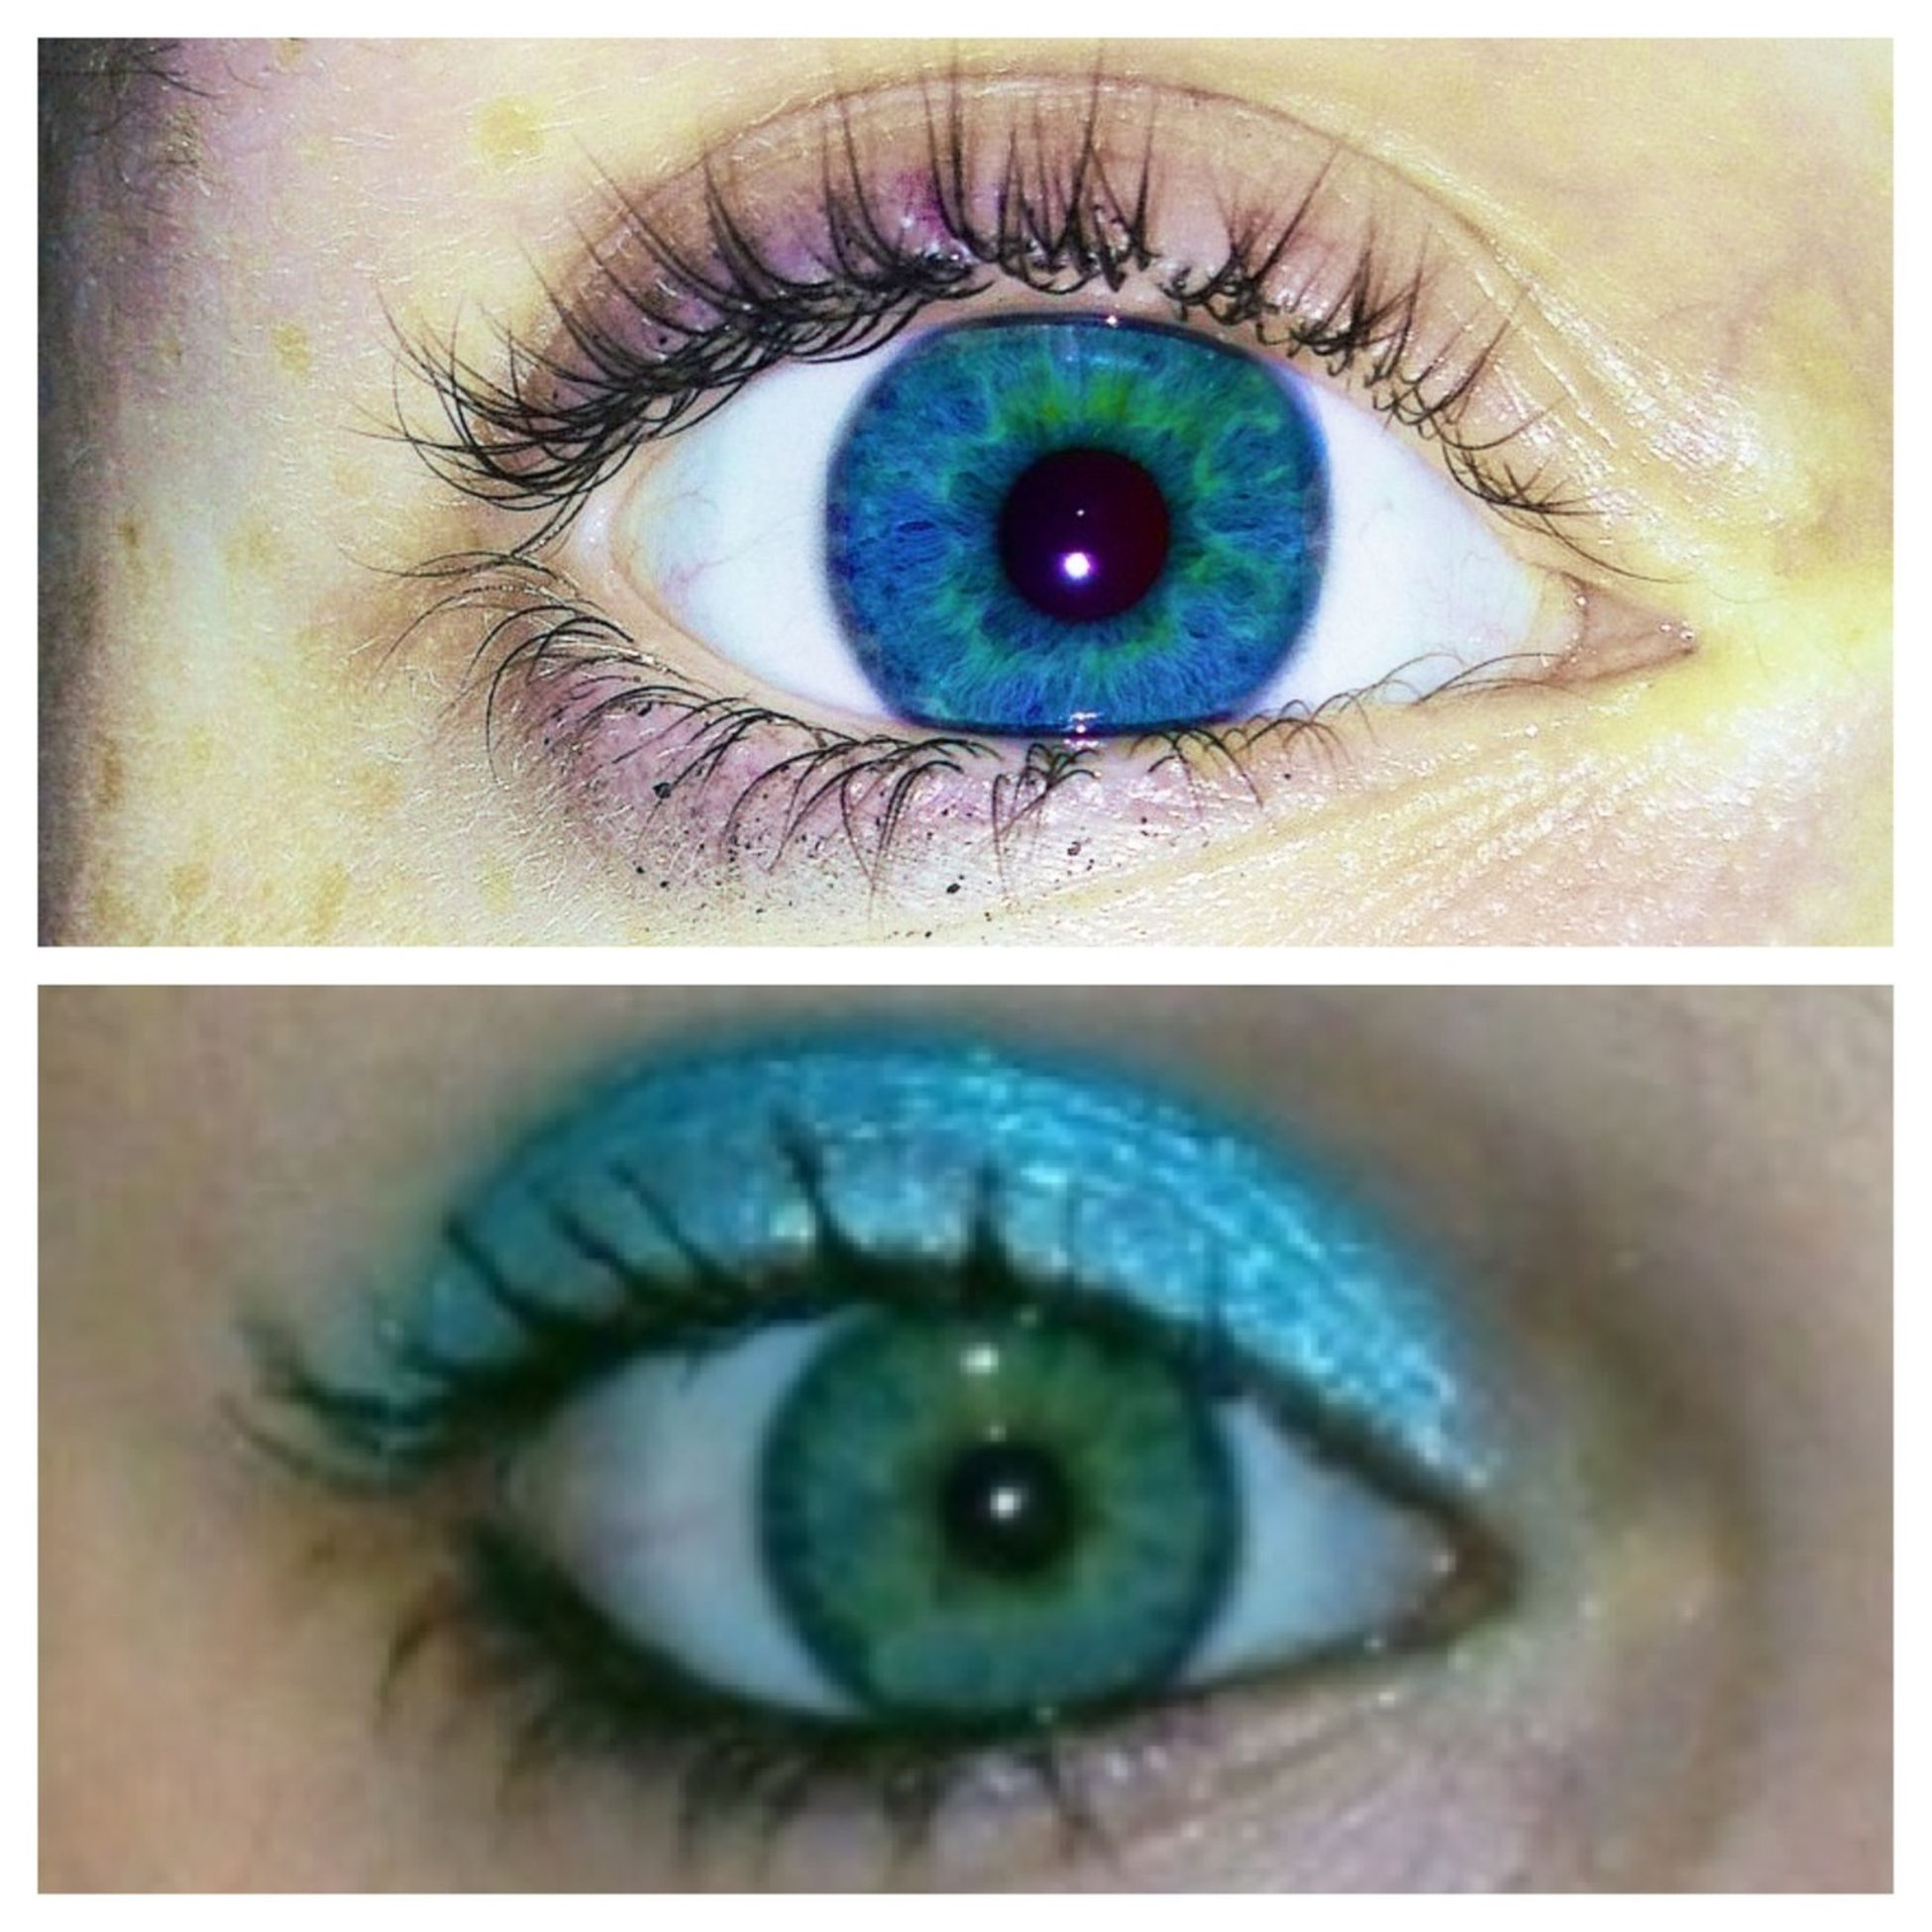 My Eyes Change Colors!